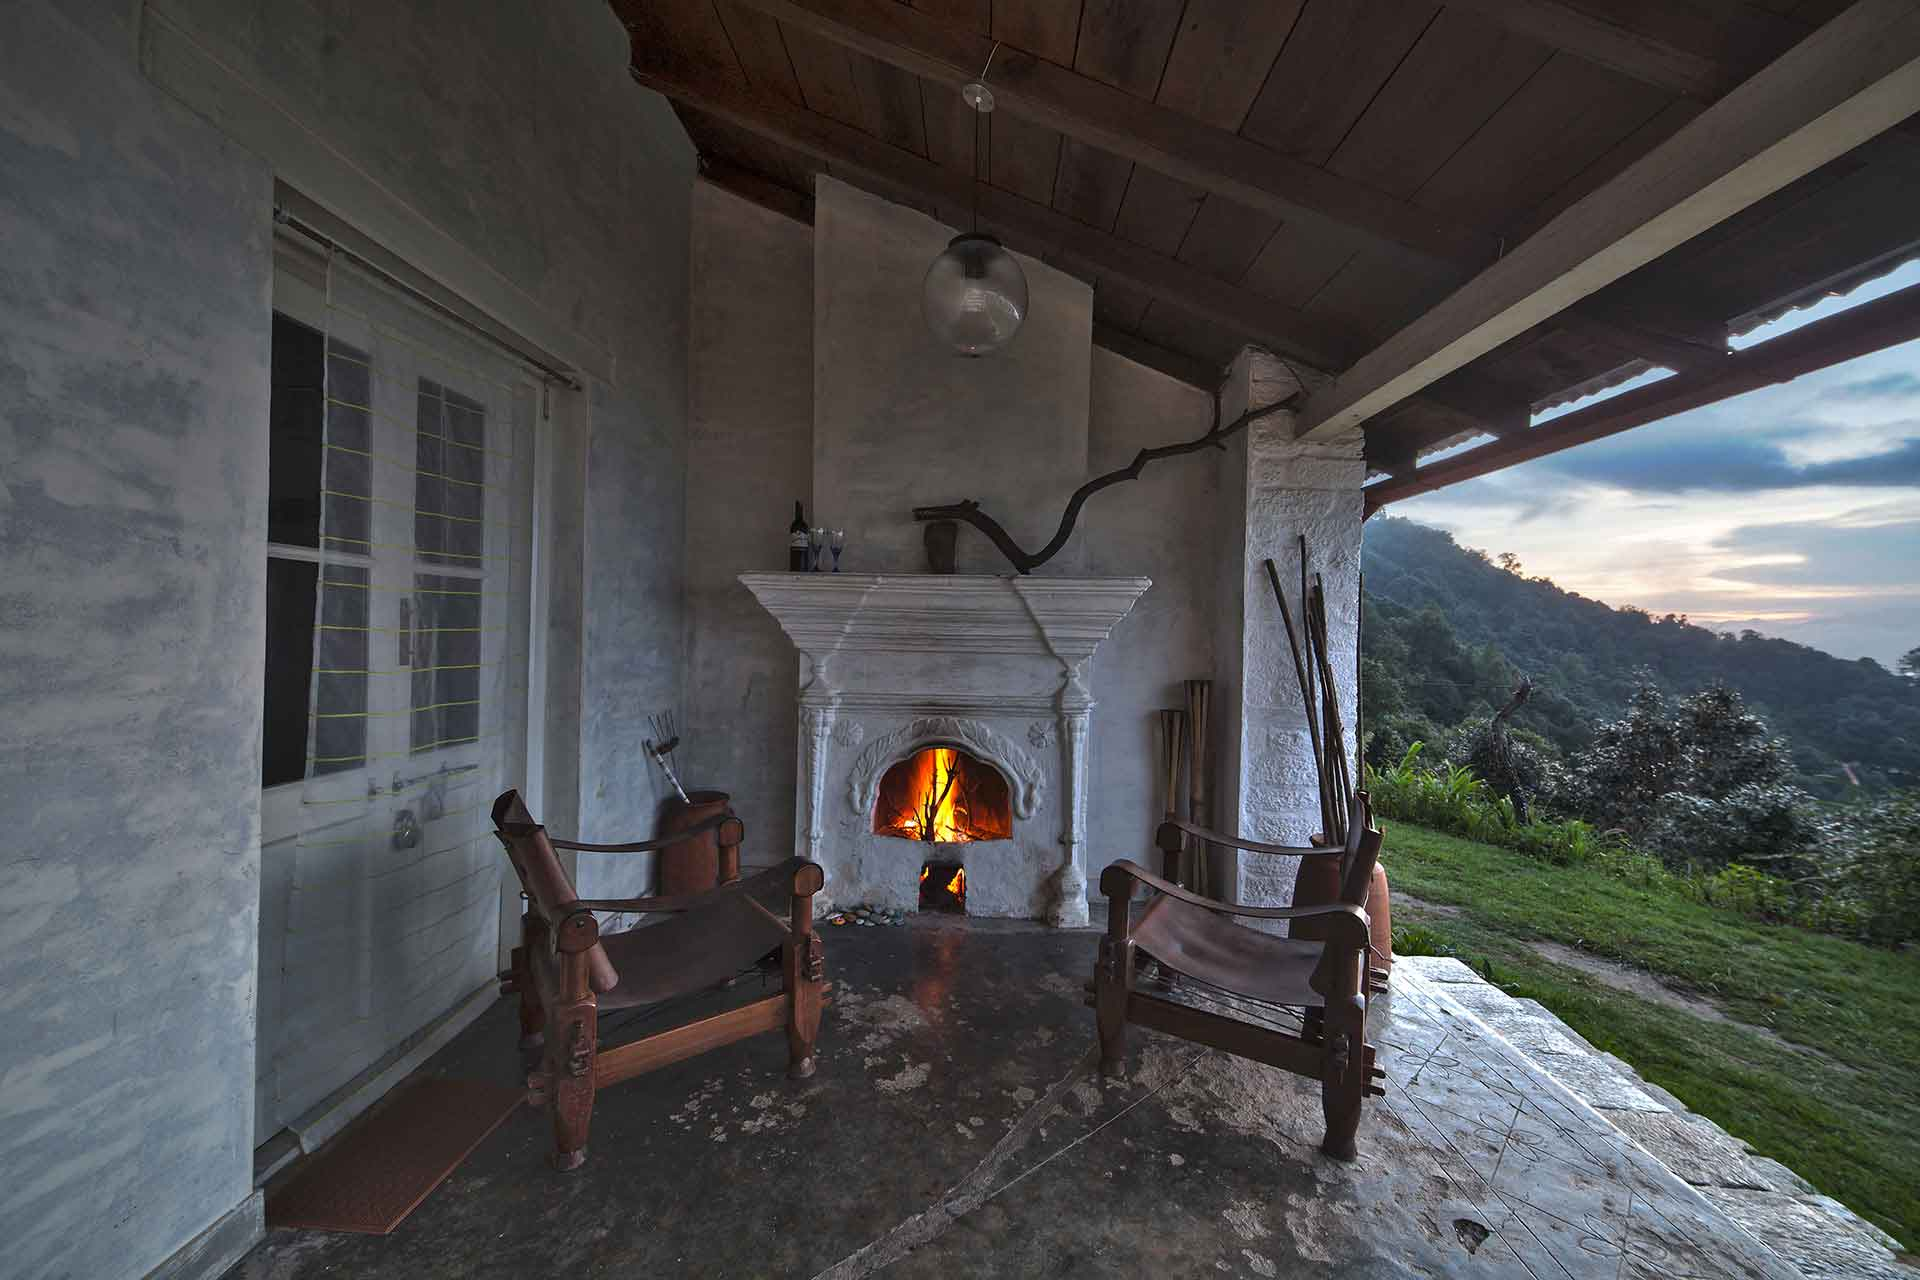 Spread across the length of the house with fire places on each side